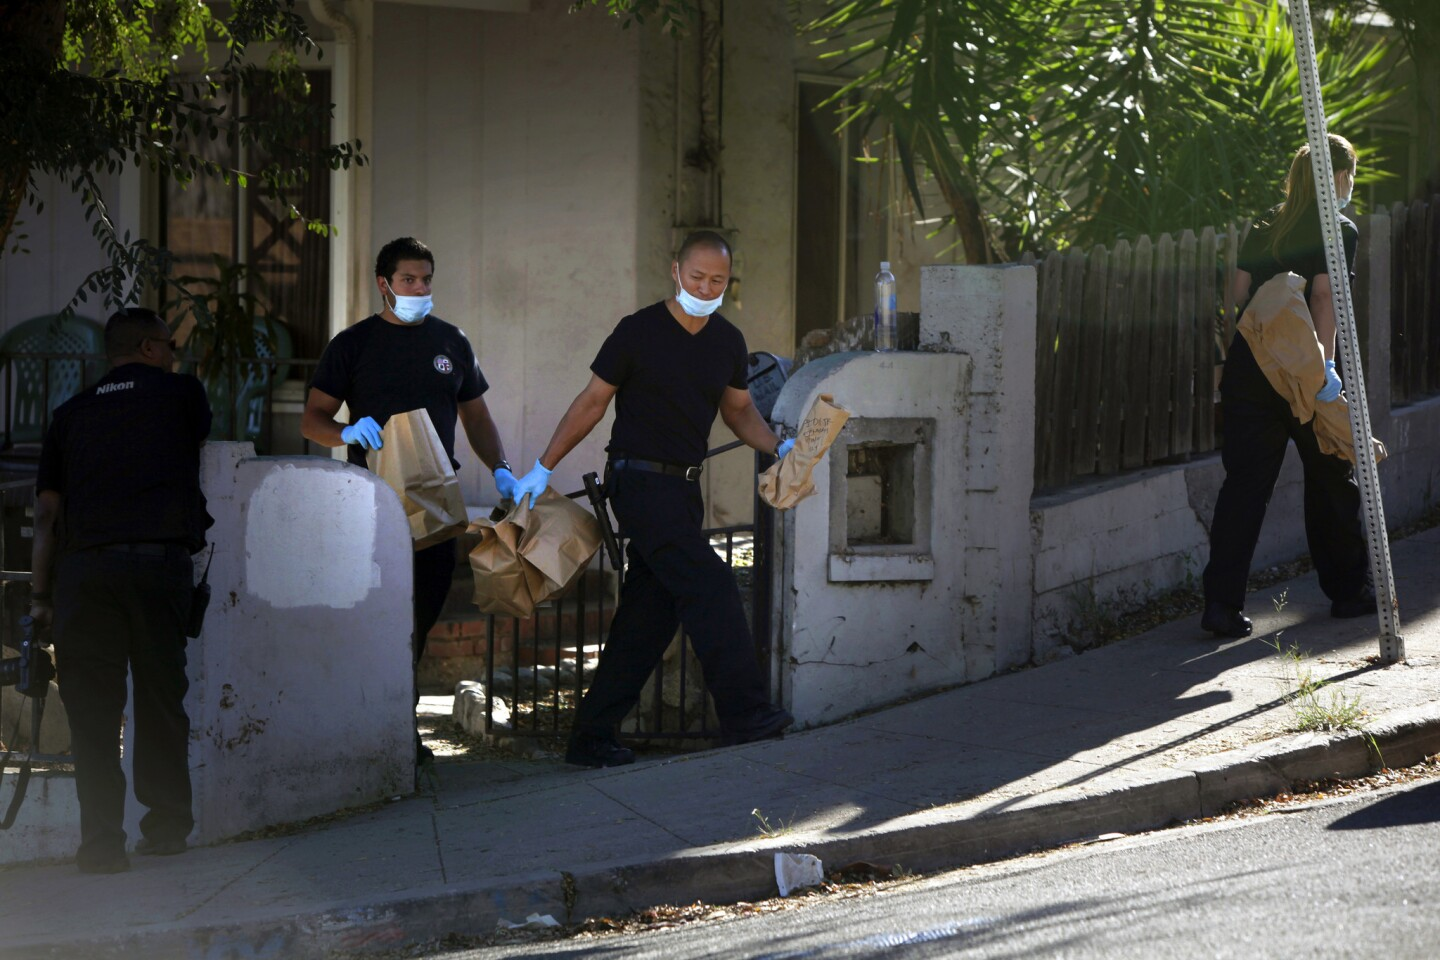 Police carry items away from a residence in the 4400 block of Topaz Street in Montecito Heights. Police served a series of search warrants in November in the neighborhood and detained some people for questioning as they continued investigating the deaths of two teenagers whose bodies were found in a park.